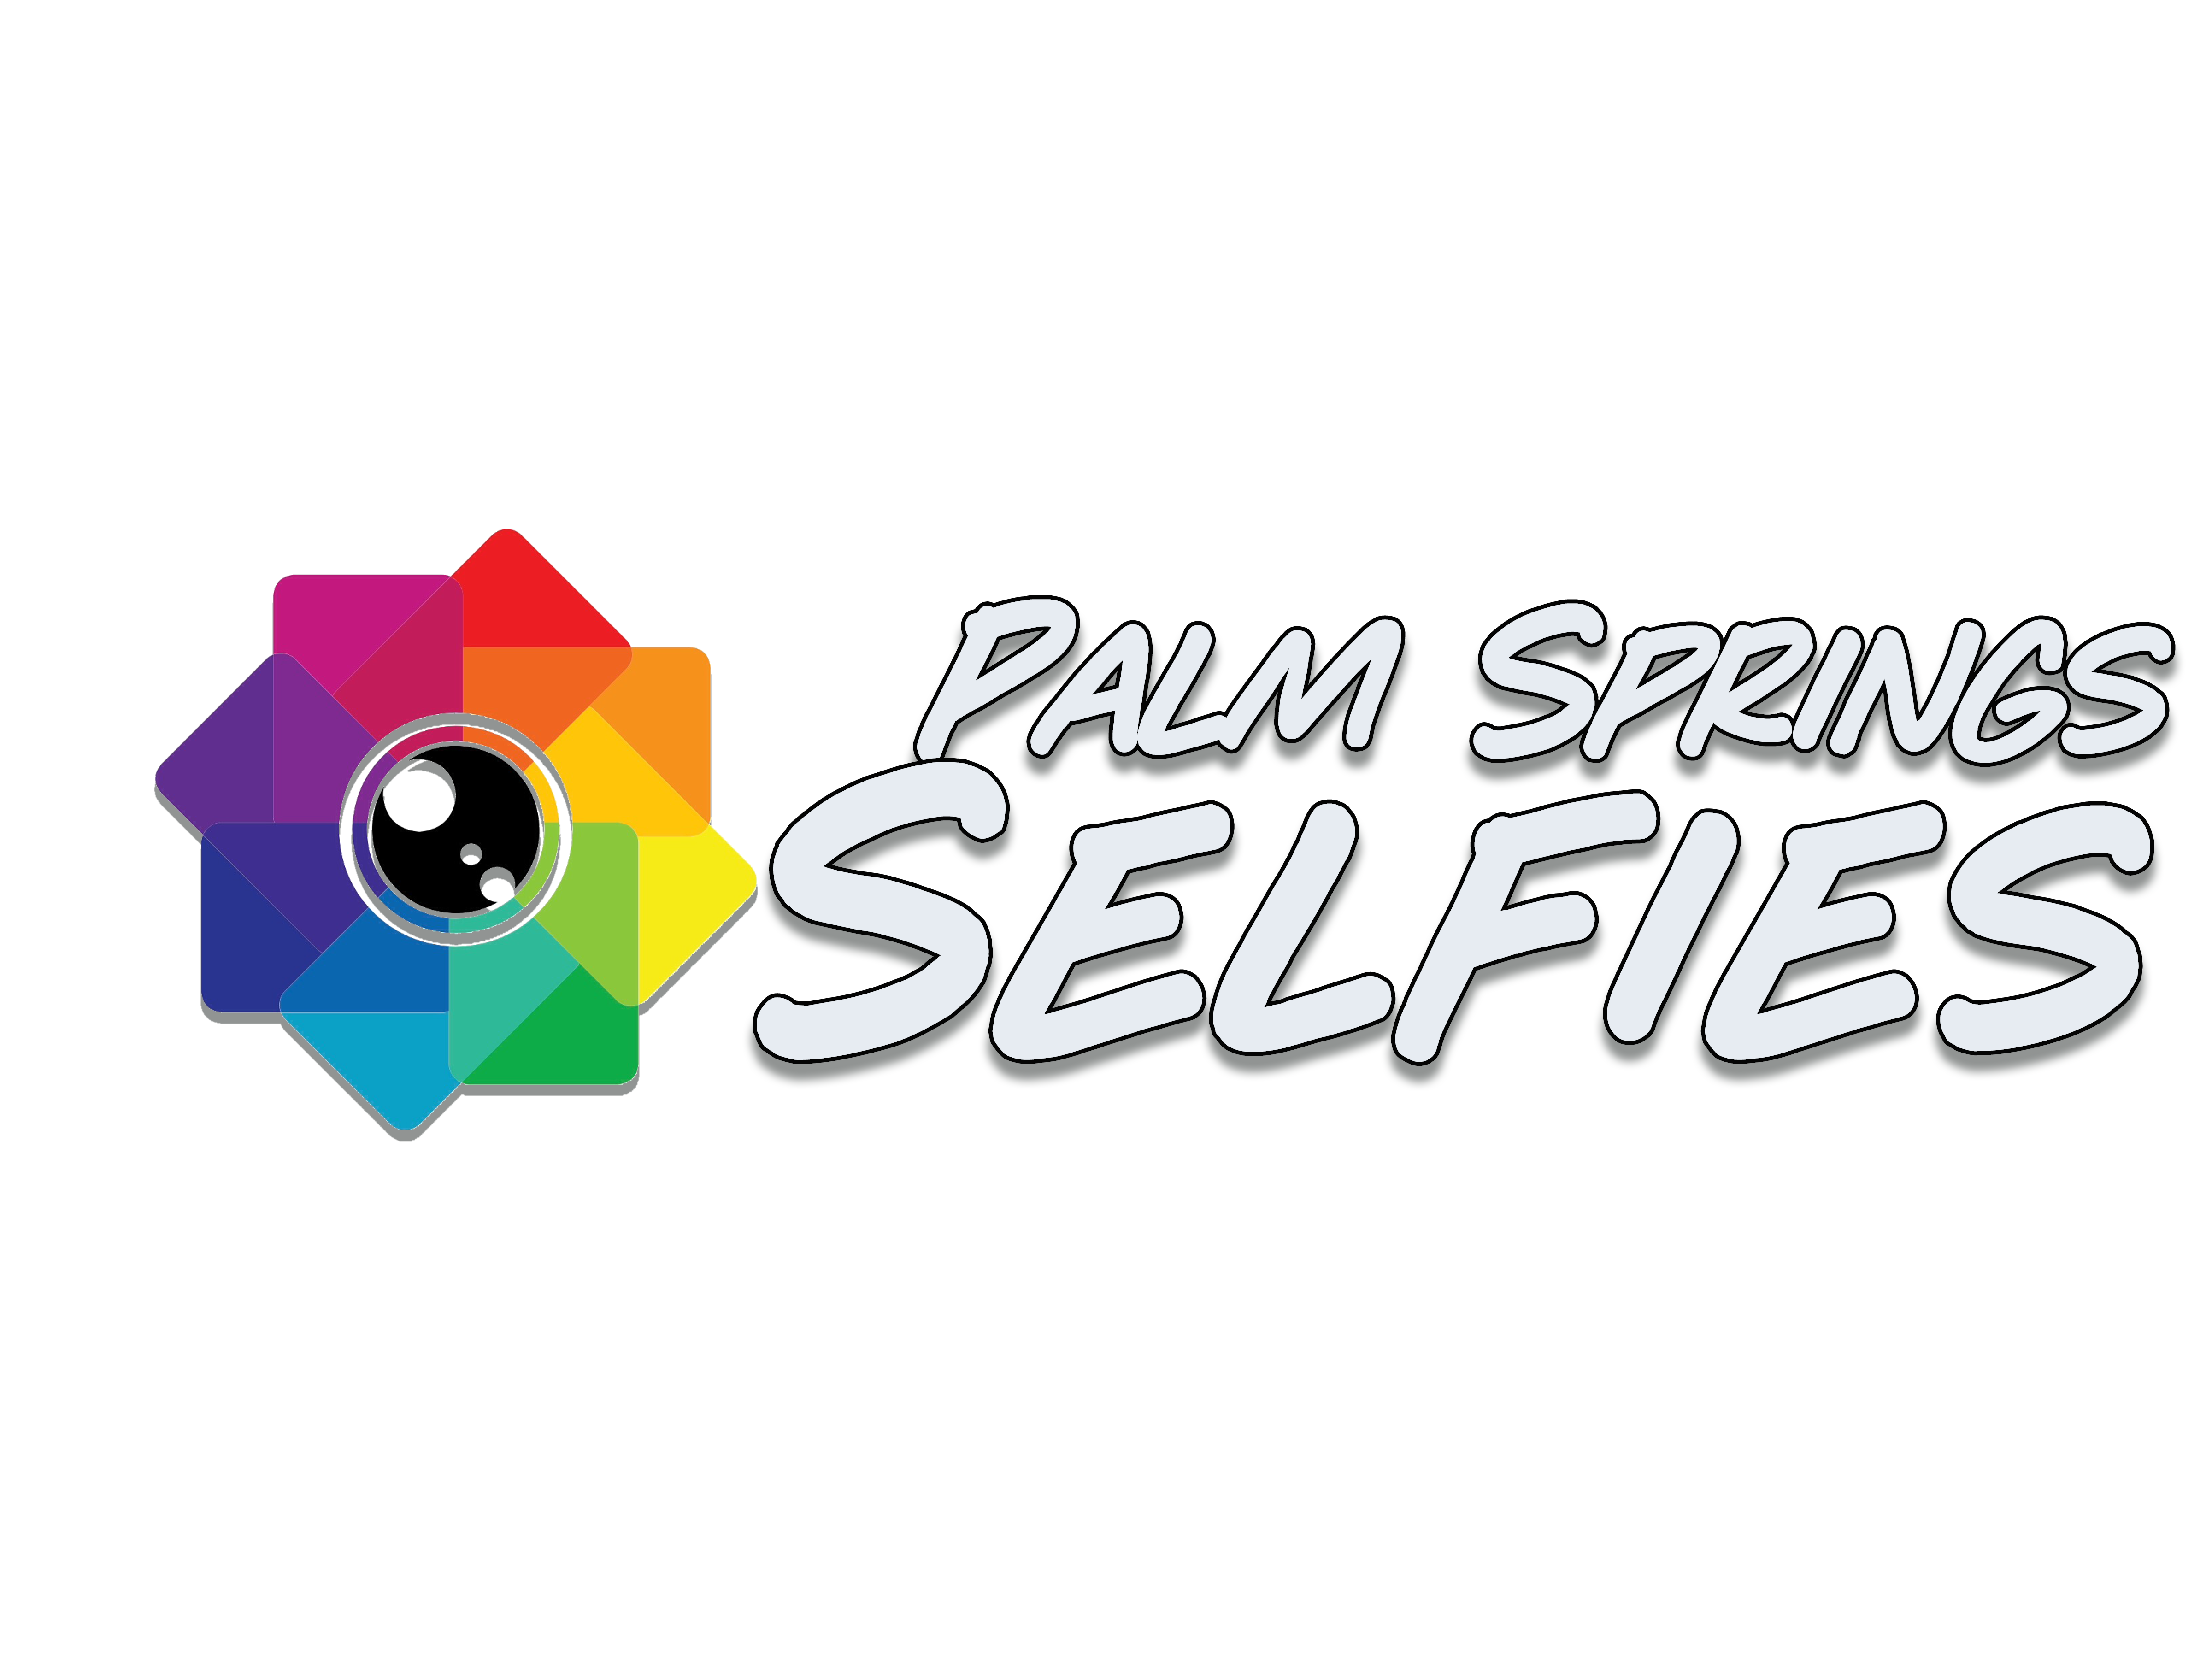 palm springs selfies logo